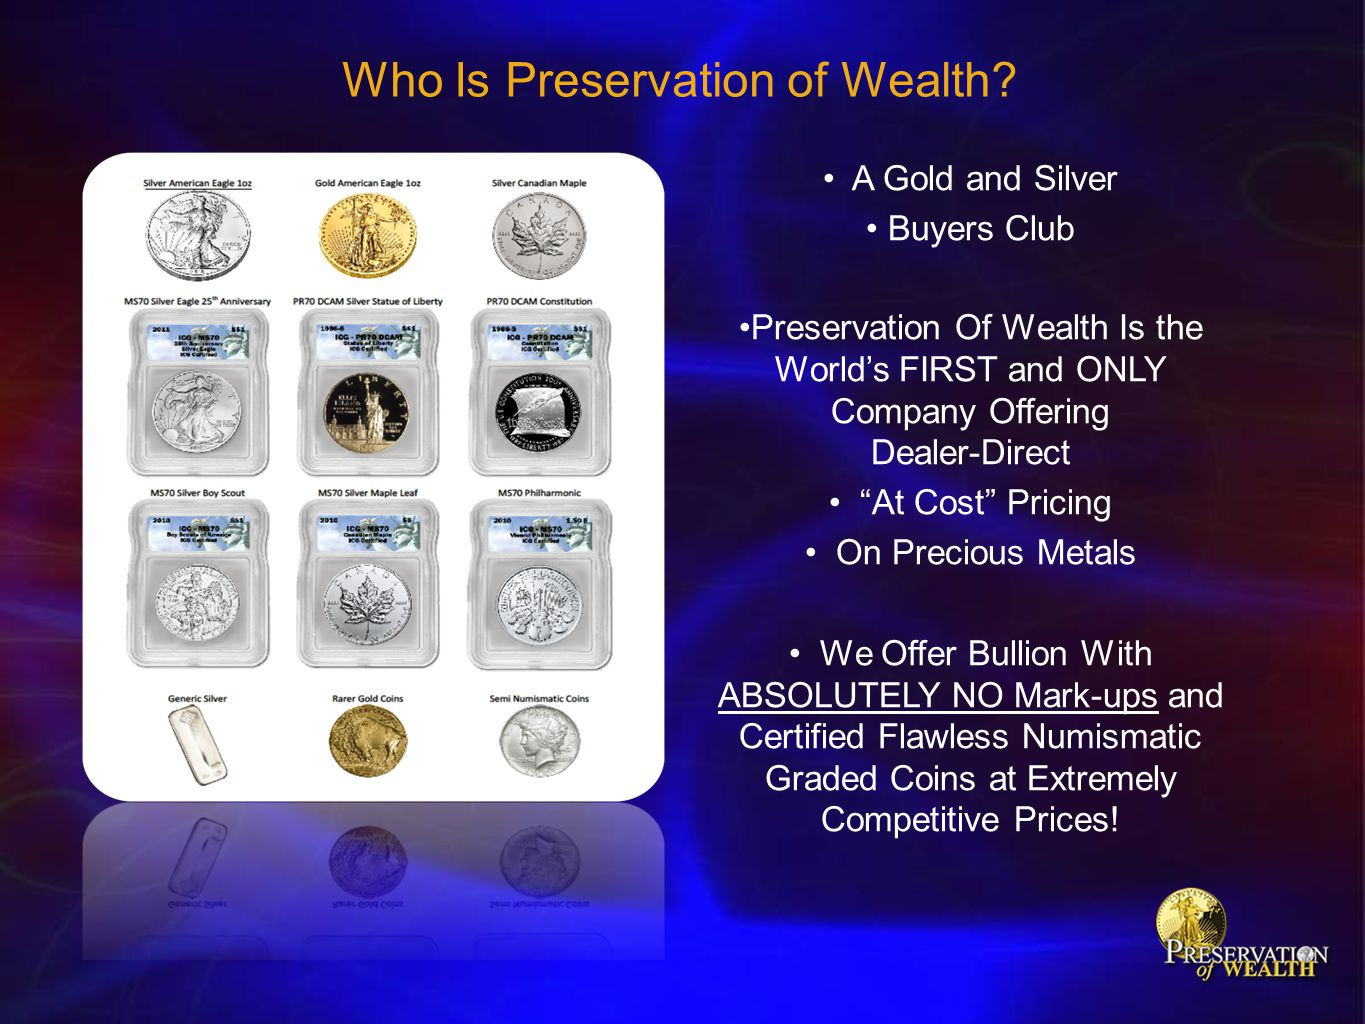 Who Is Preservation of Wealth